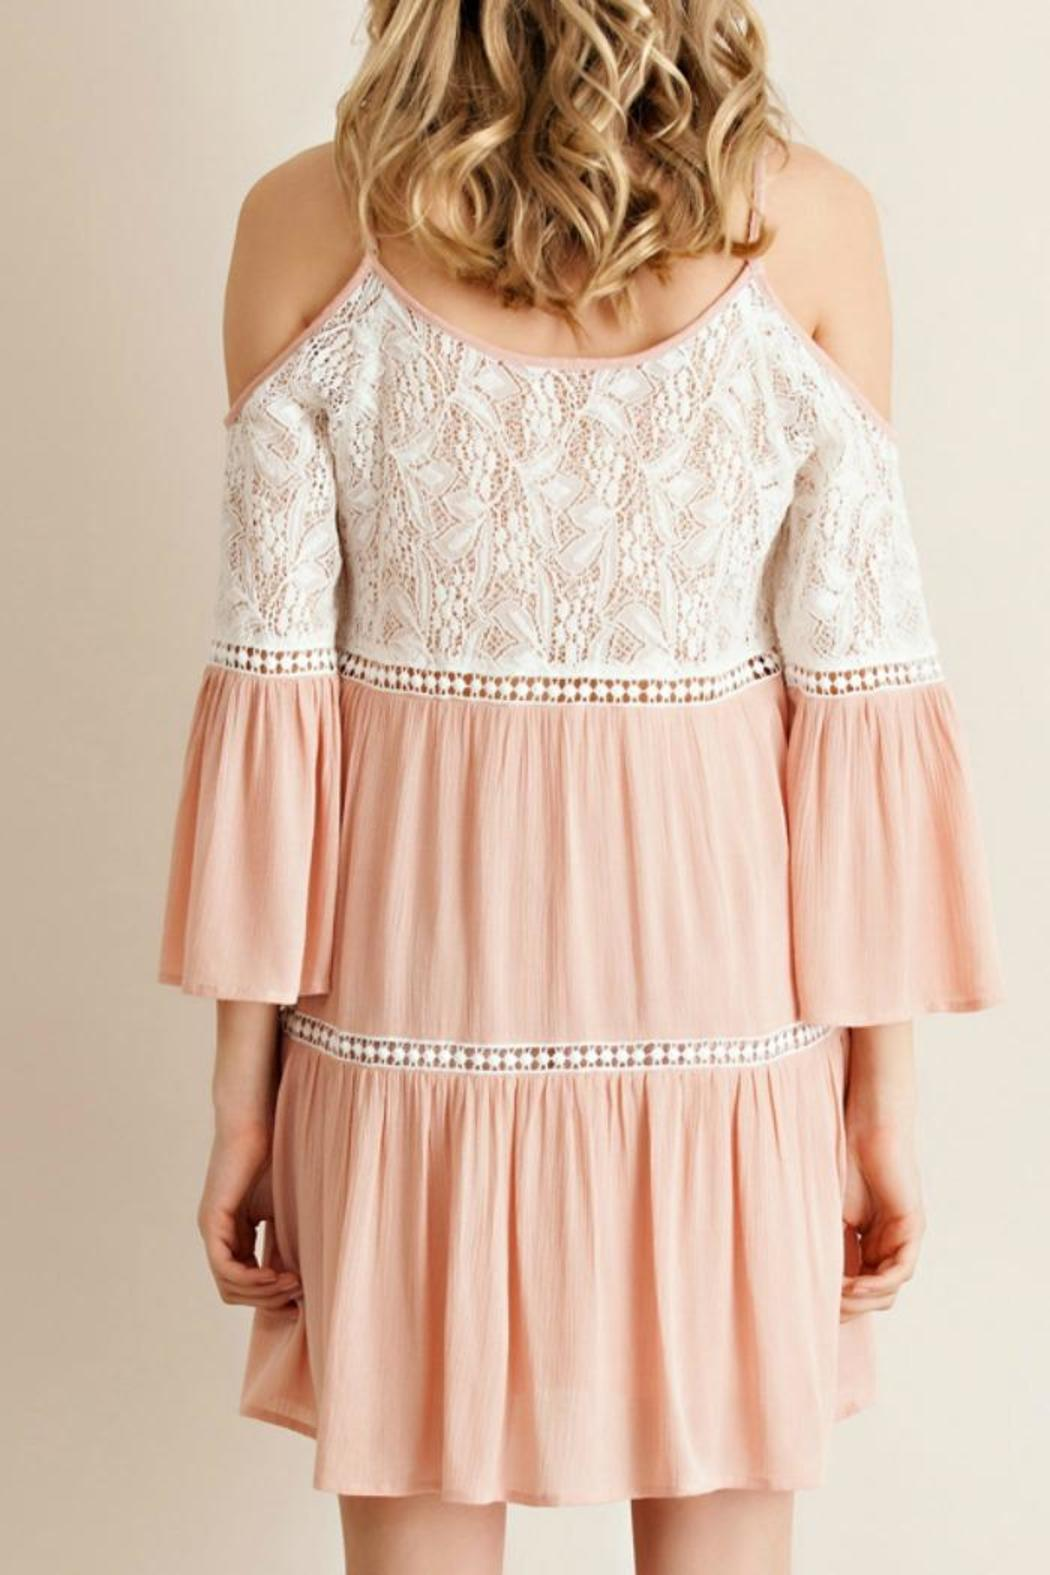 3669fb3782a2 Entro Girly Girl Dress from Mississippi by Exit 16 - Diamondhead ...